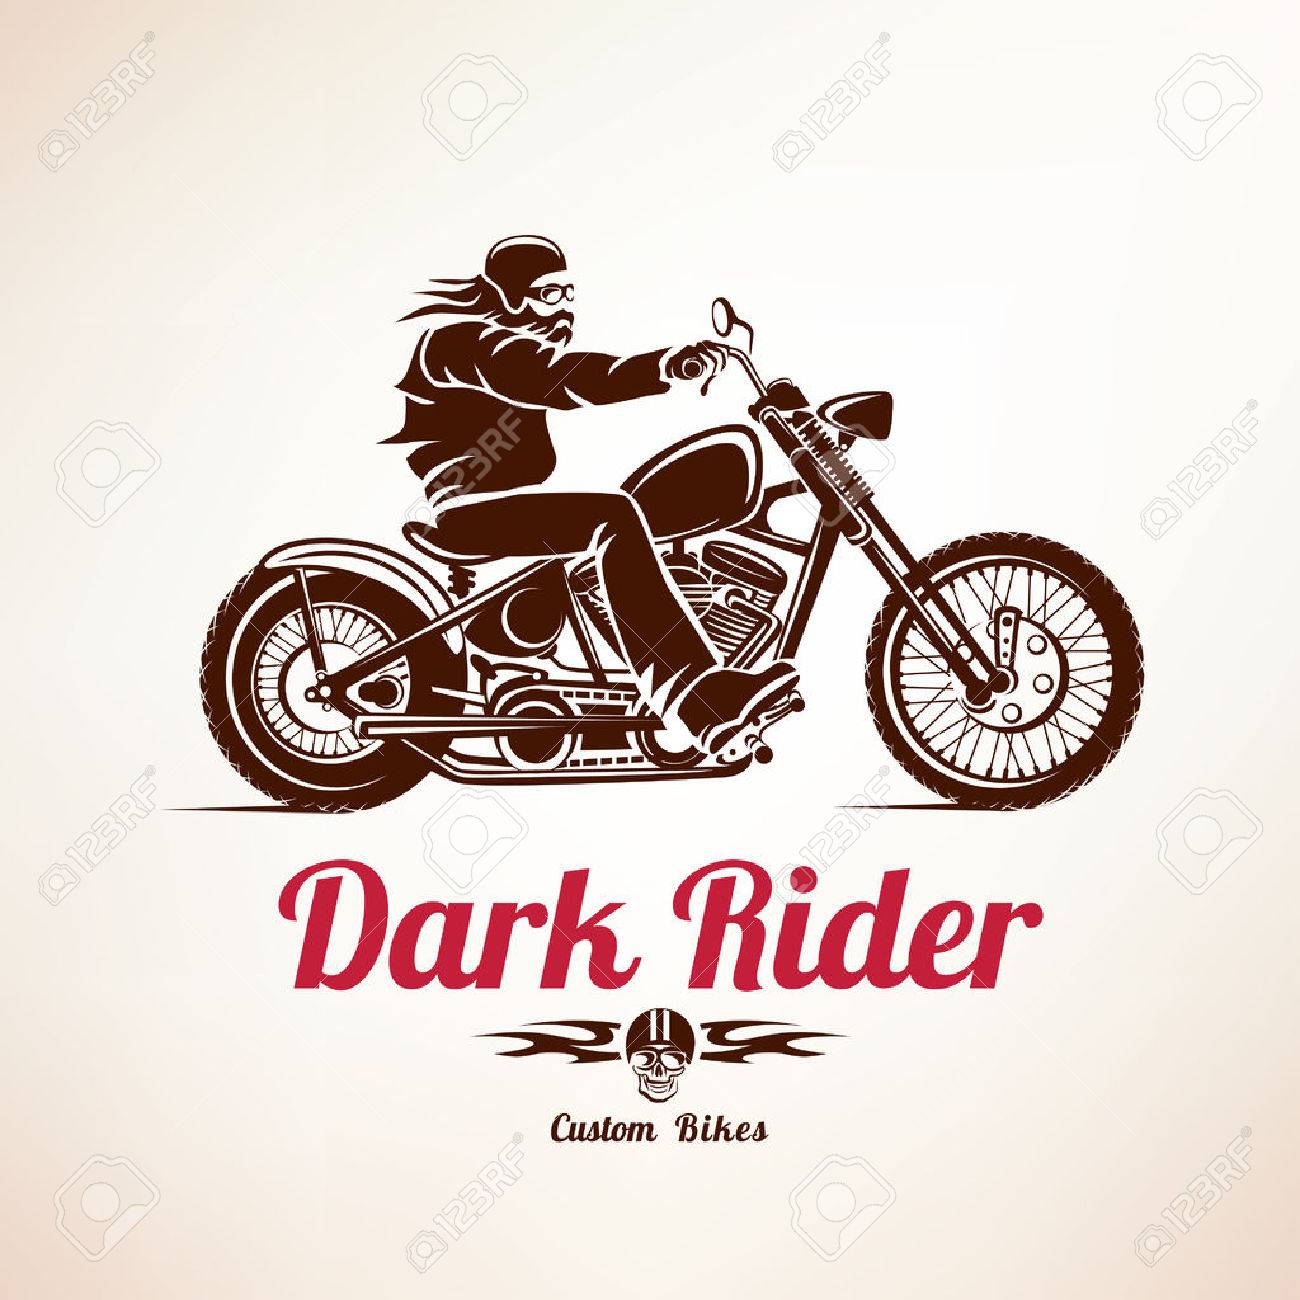 biker, motorcycle grunge vector silhouette, retro emblem and label - 50926408